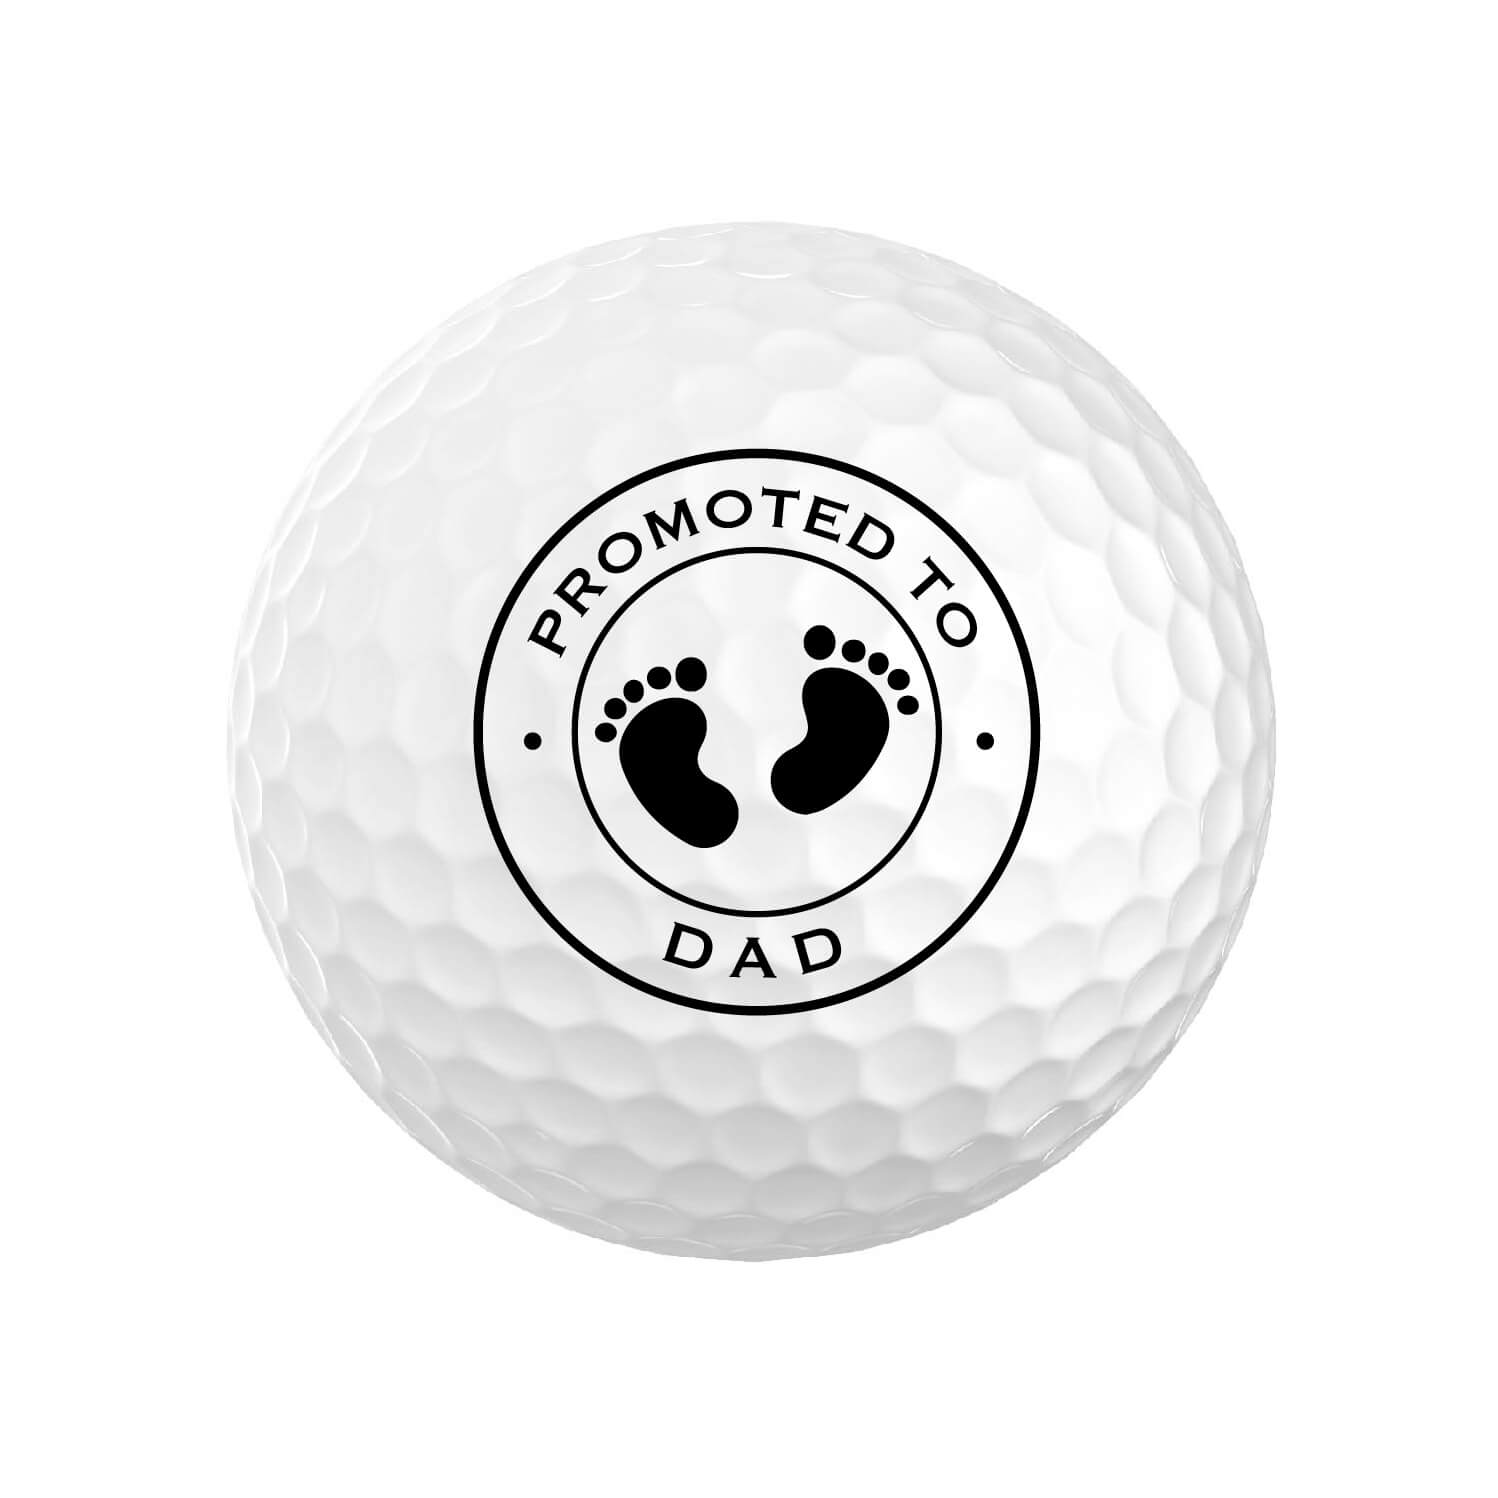 Promoted to Dad Golf Balls